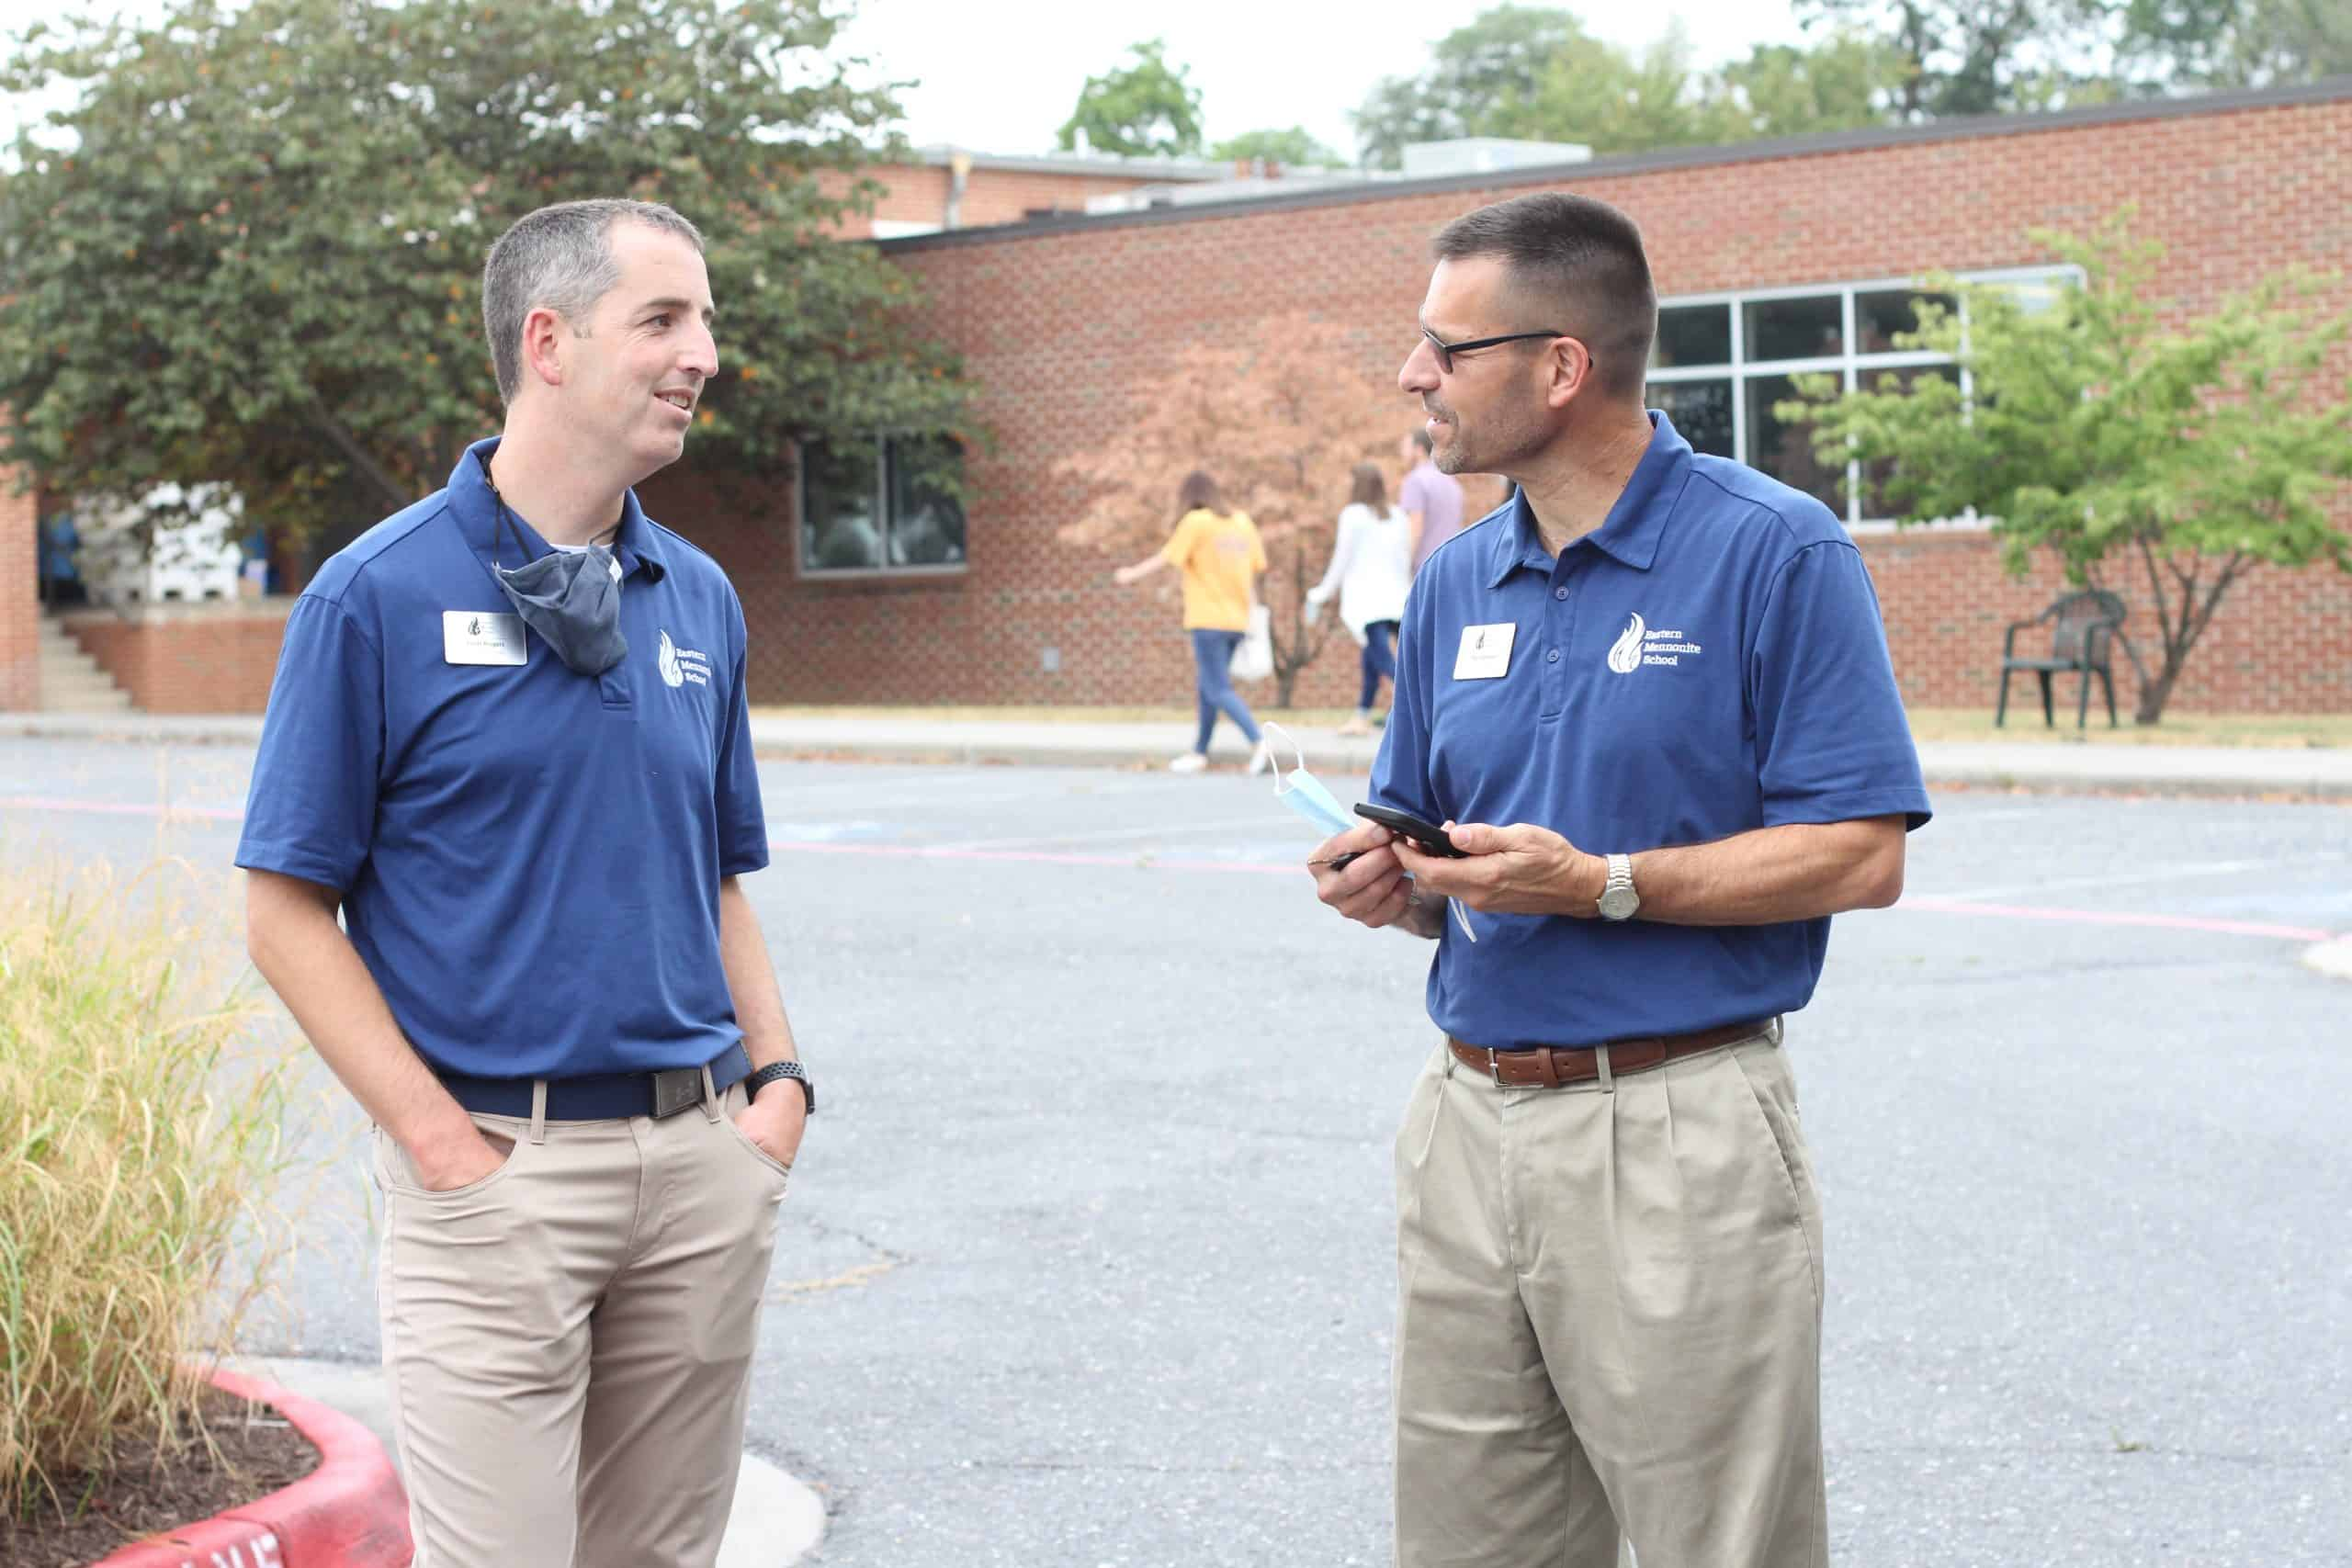 Scott Rogers, left, talks with Paul Leaman, head of school, at the fall 2021 Back to School event.